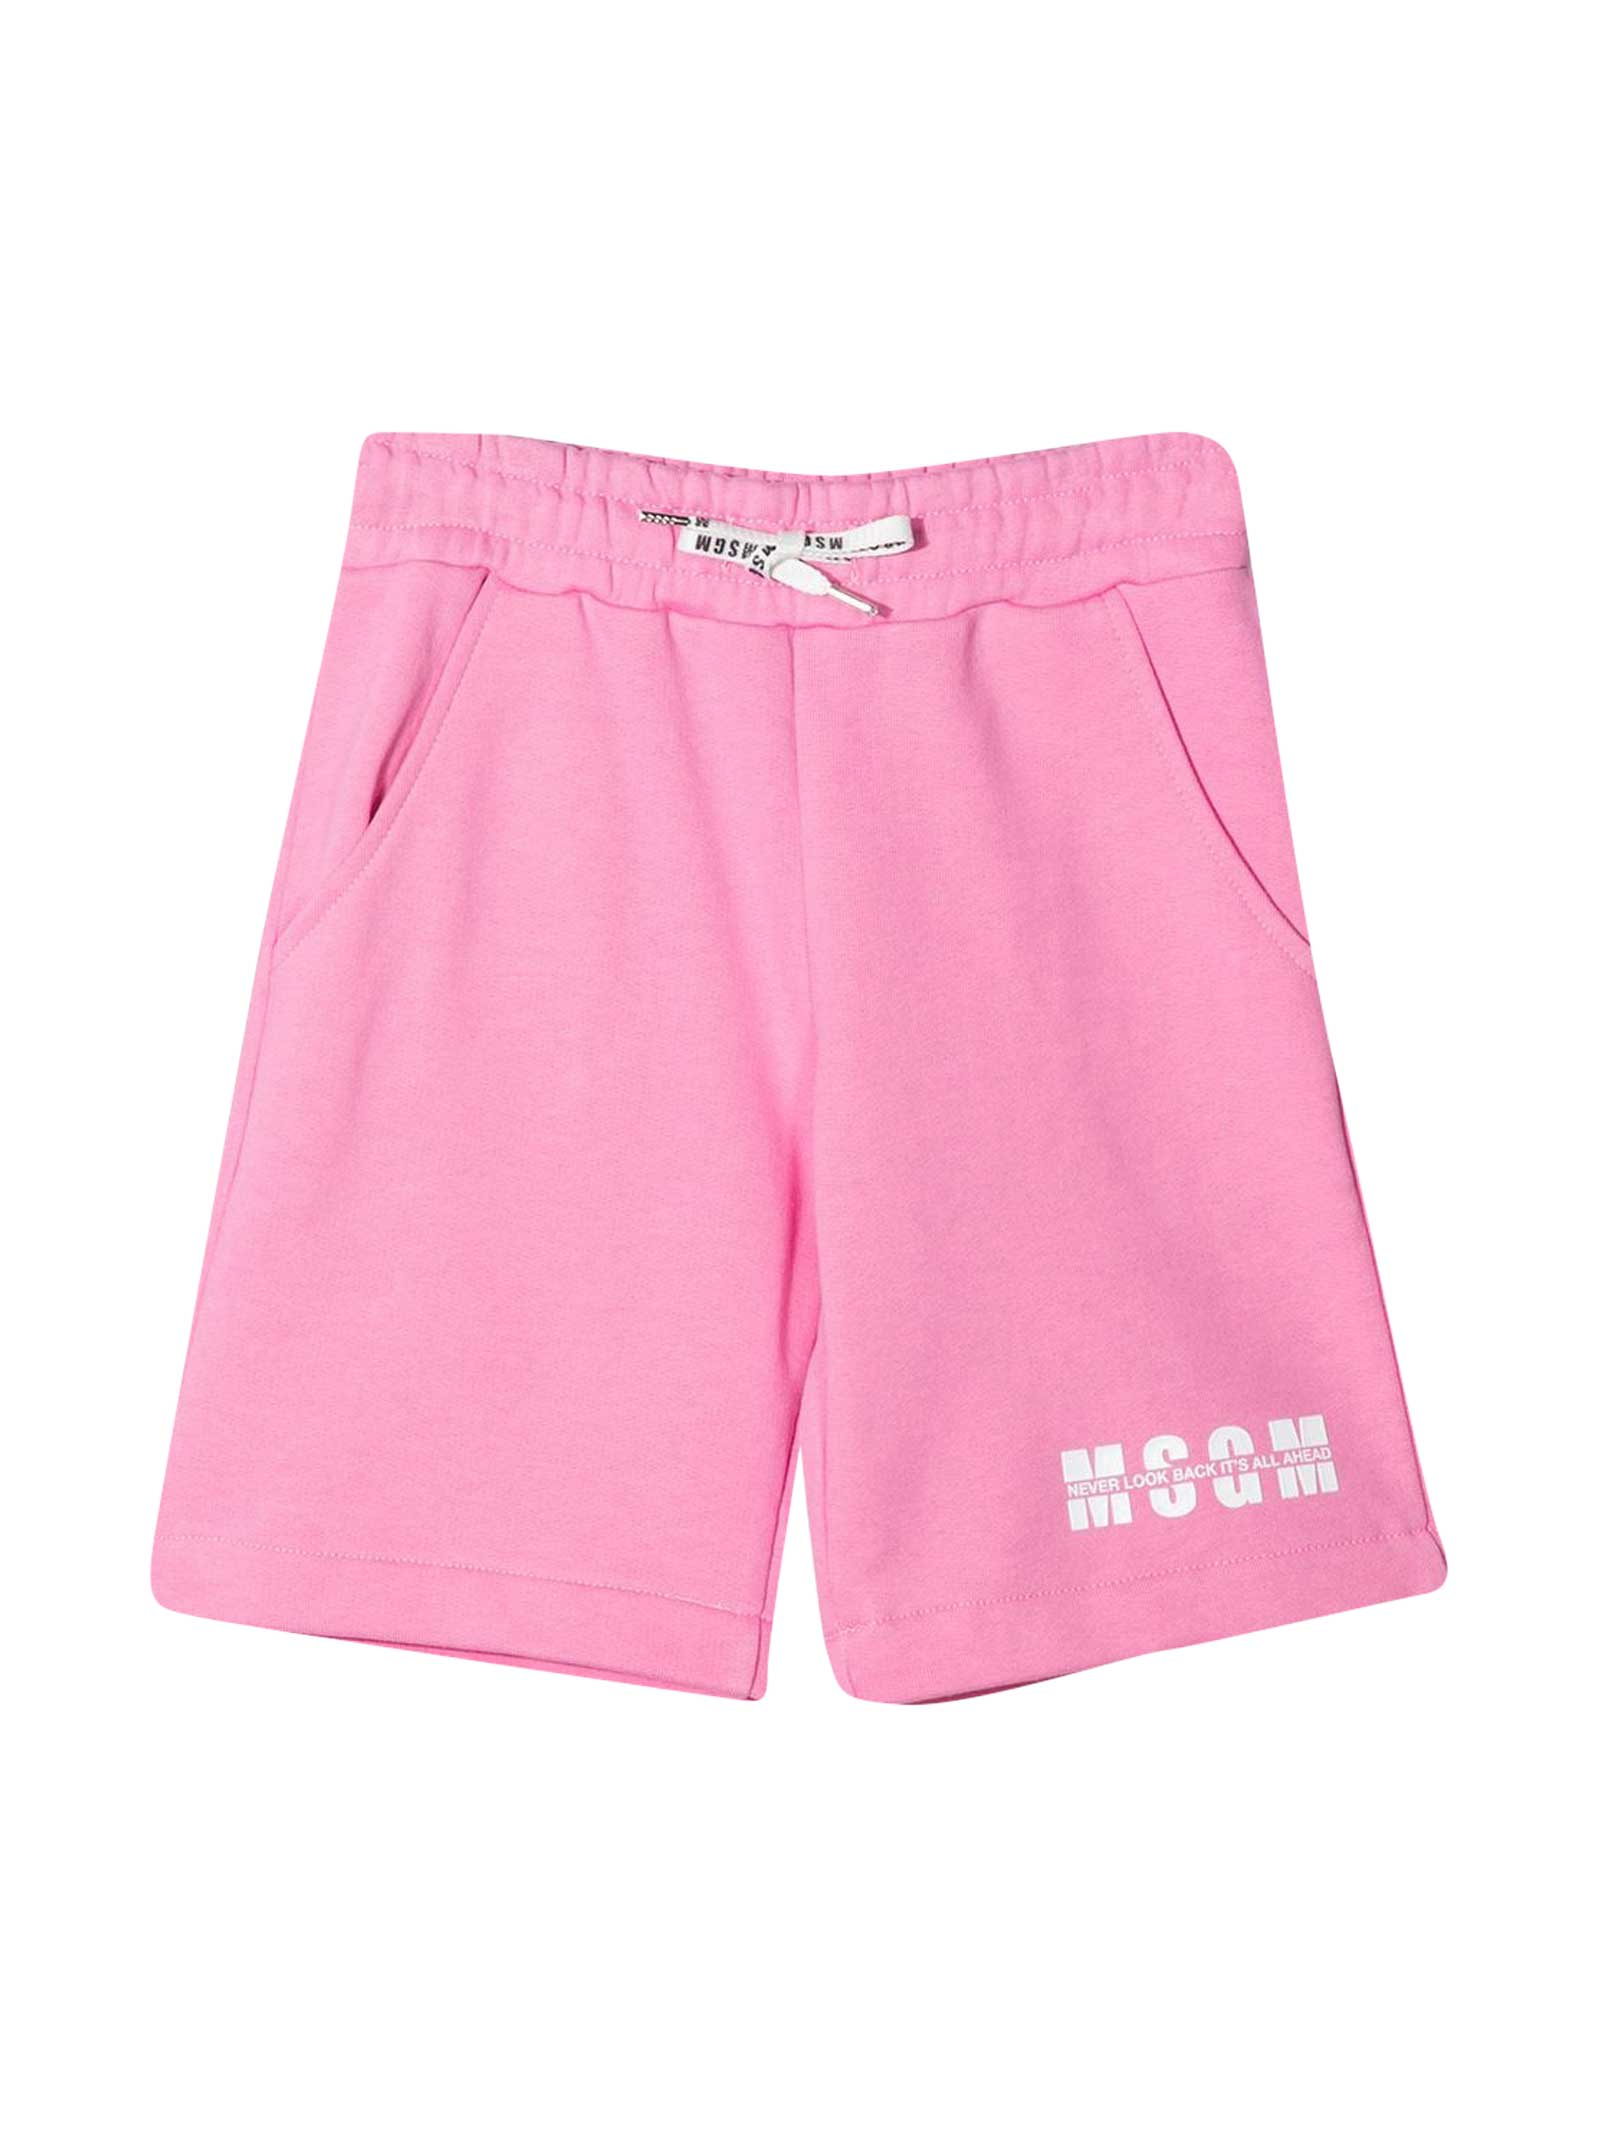 Msgm Cottons TEEN PINK SHORTS